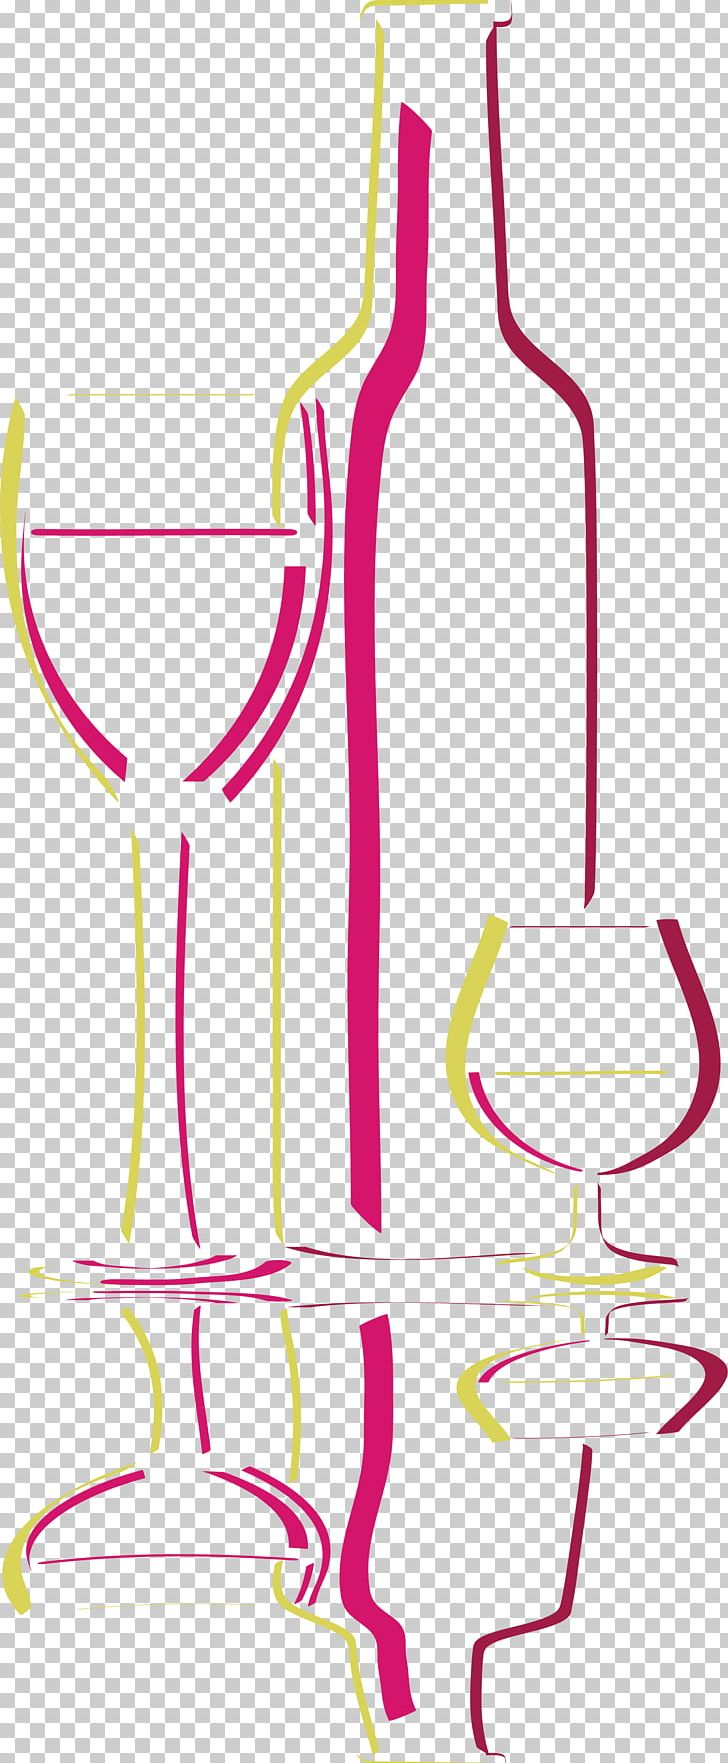 medium resolution of wine glass bottle png clipart angle area bottle bottle vector broken glass free png download